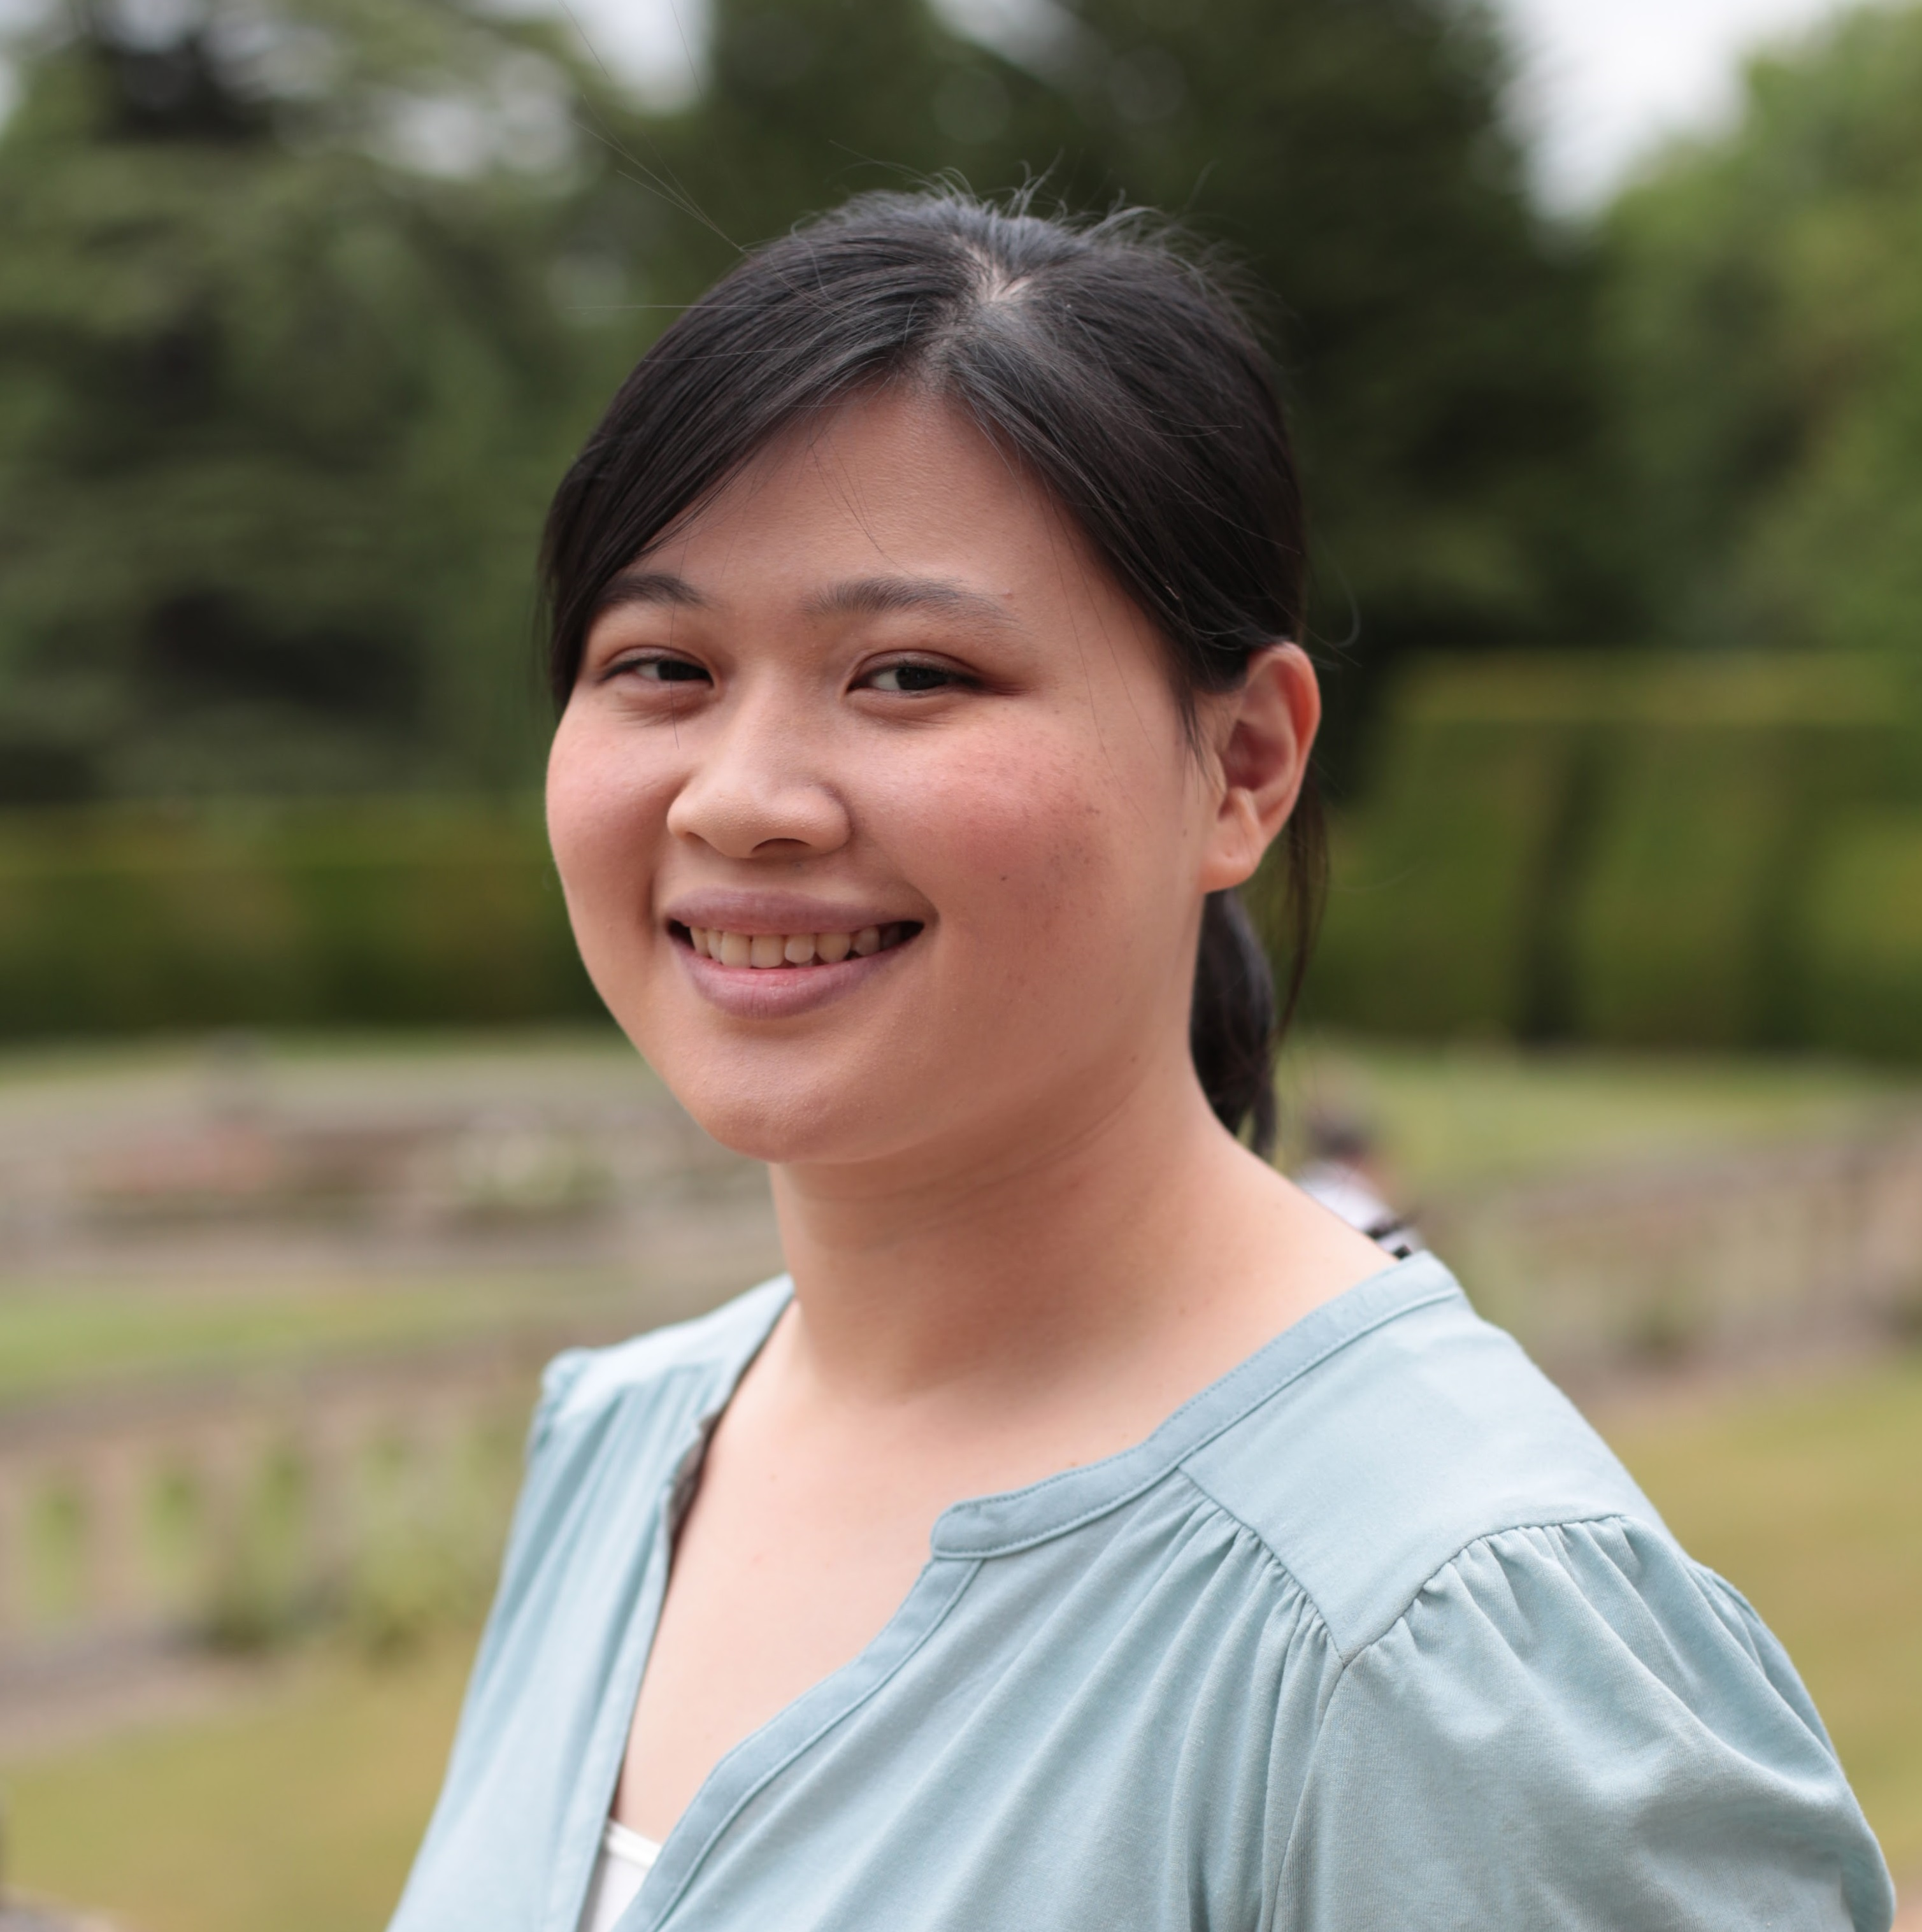 Yunguan Qin 2017 Queen's Young Leader from Singapore